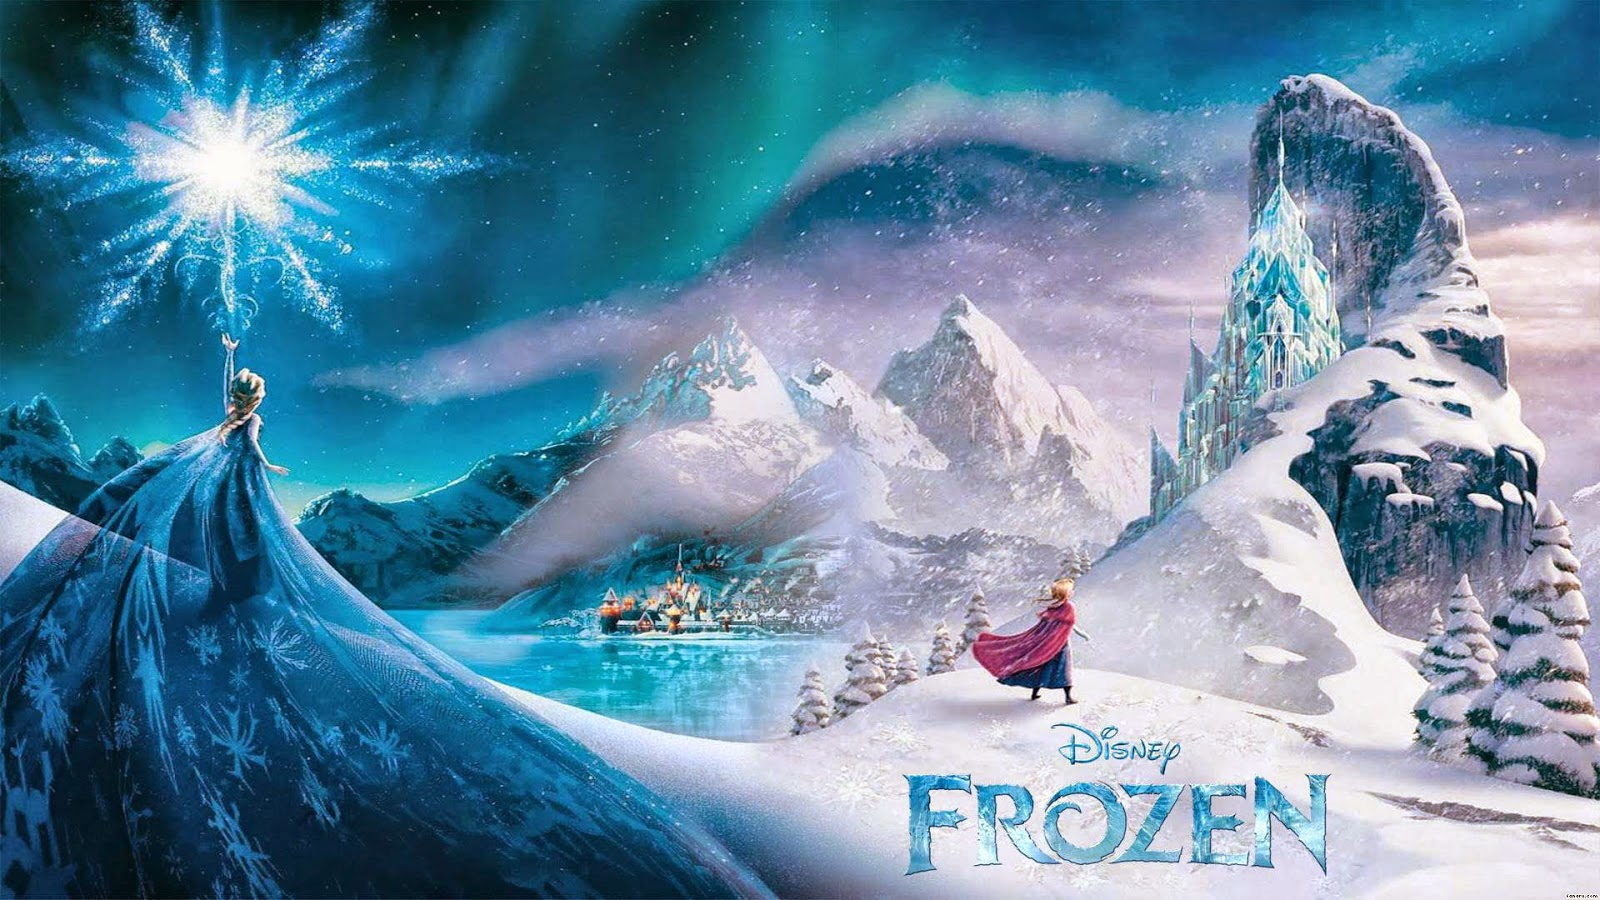 Frozen Wallpaper HD 1080p